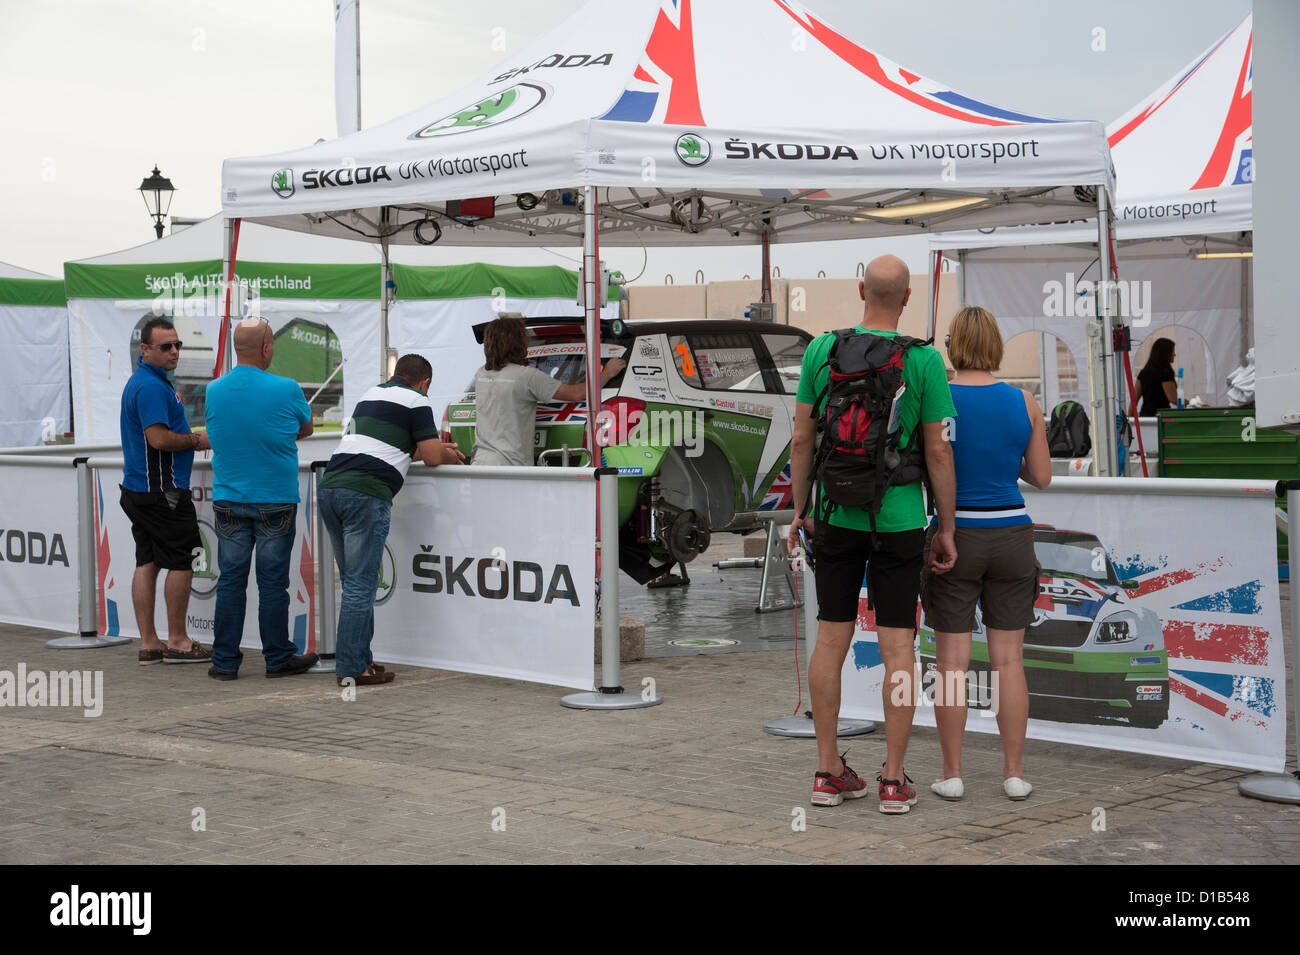 Cyprus Rally Skoda UK Motorsport tented area at Paphos Cyprus November 2012 & Cyprus Rally Skoda UK Motorsport tented area at Paphos Cyprus ...